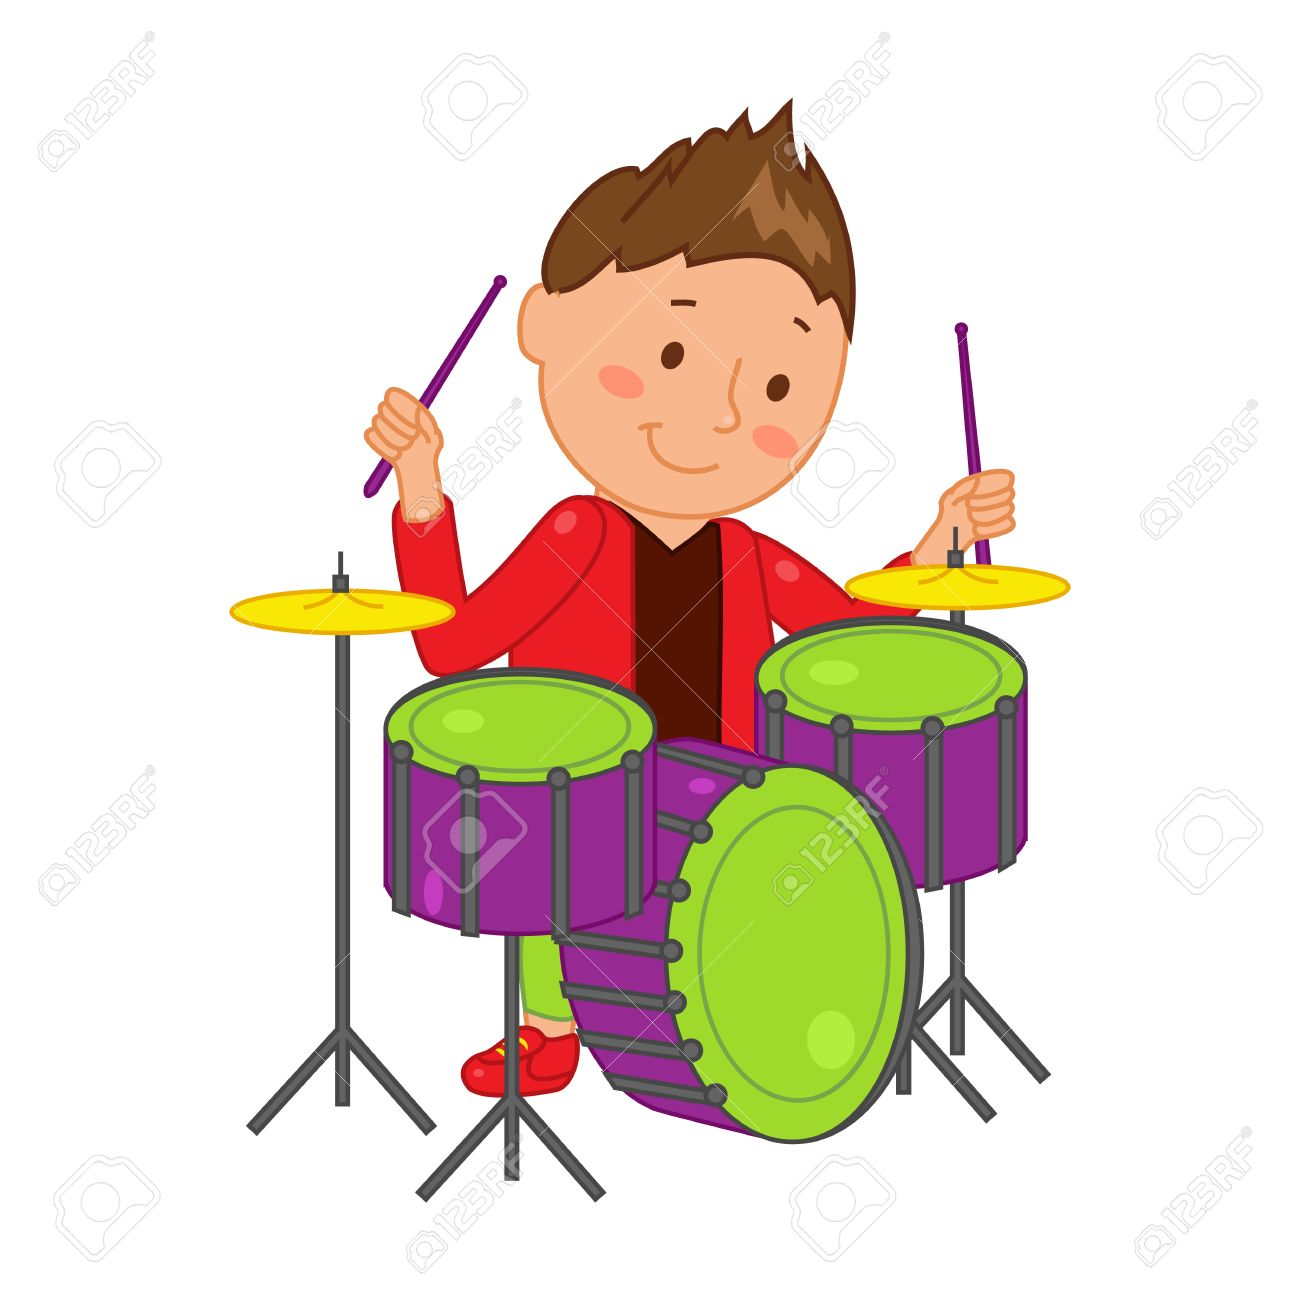 cartoon musician kid vector illustration for children music rh 123rf com drums clipart african drummer clipart